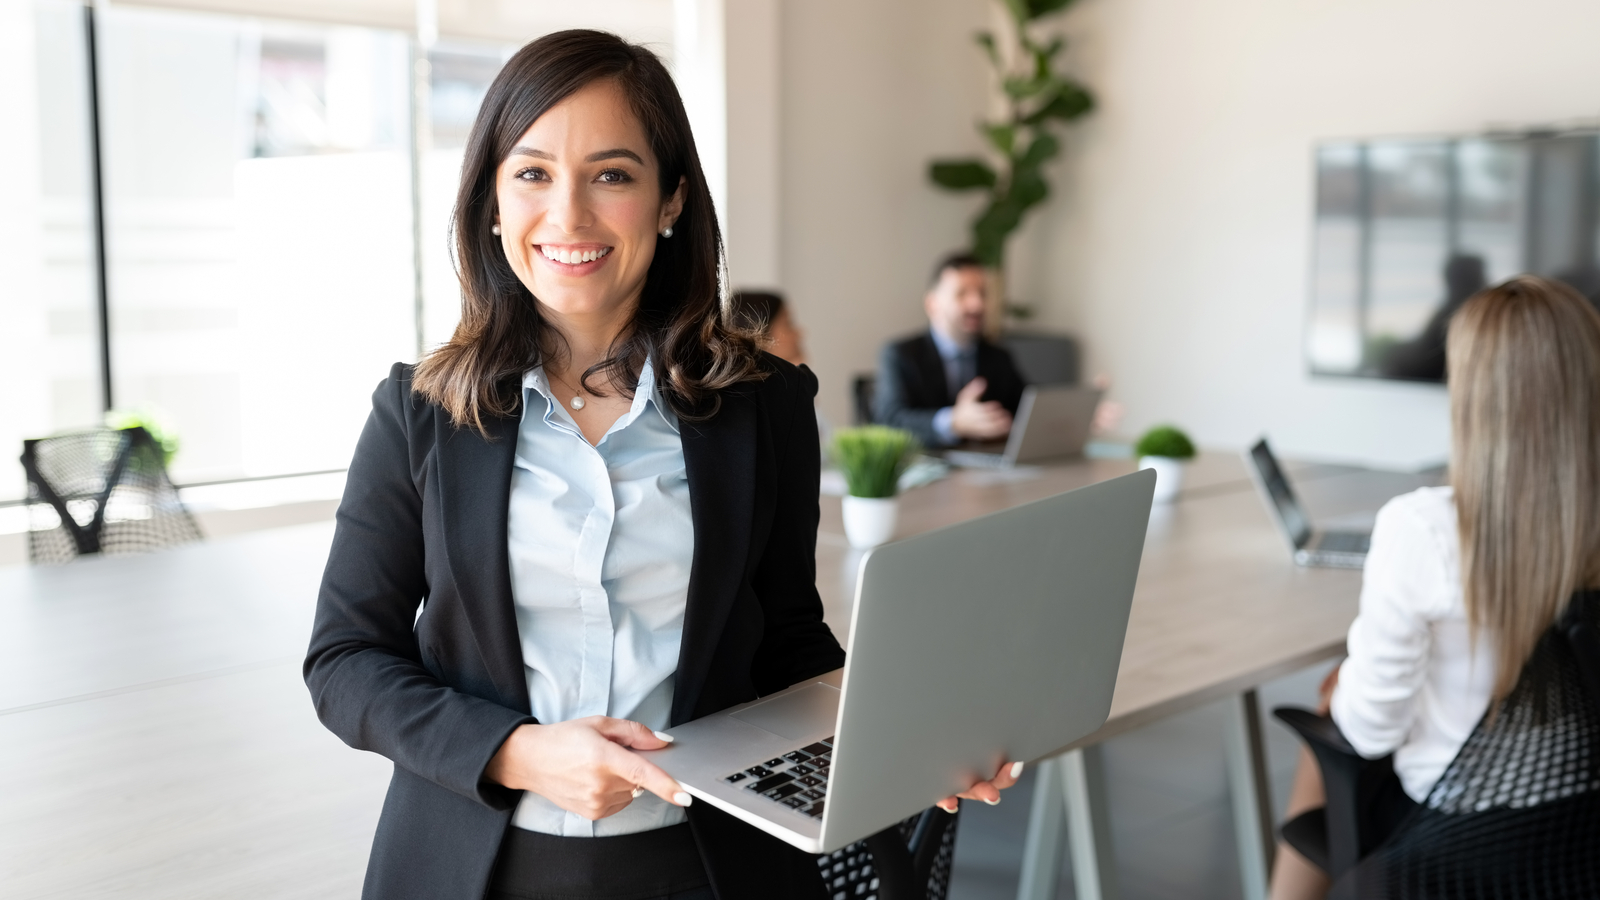 Image of smiling IT manager holding laptop. Electronic signatures are being increasingly used by IT managers and administrators to streamline workflow efforts.